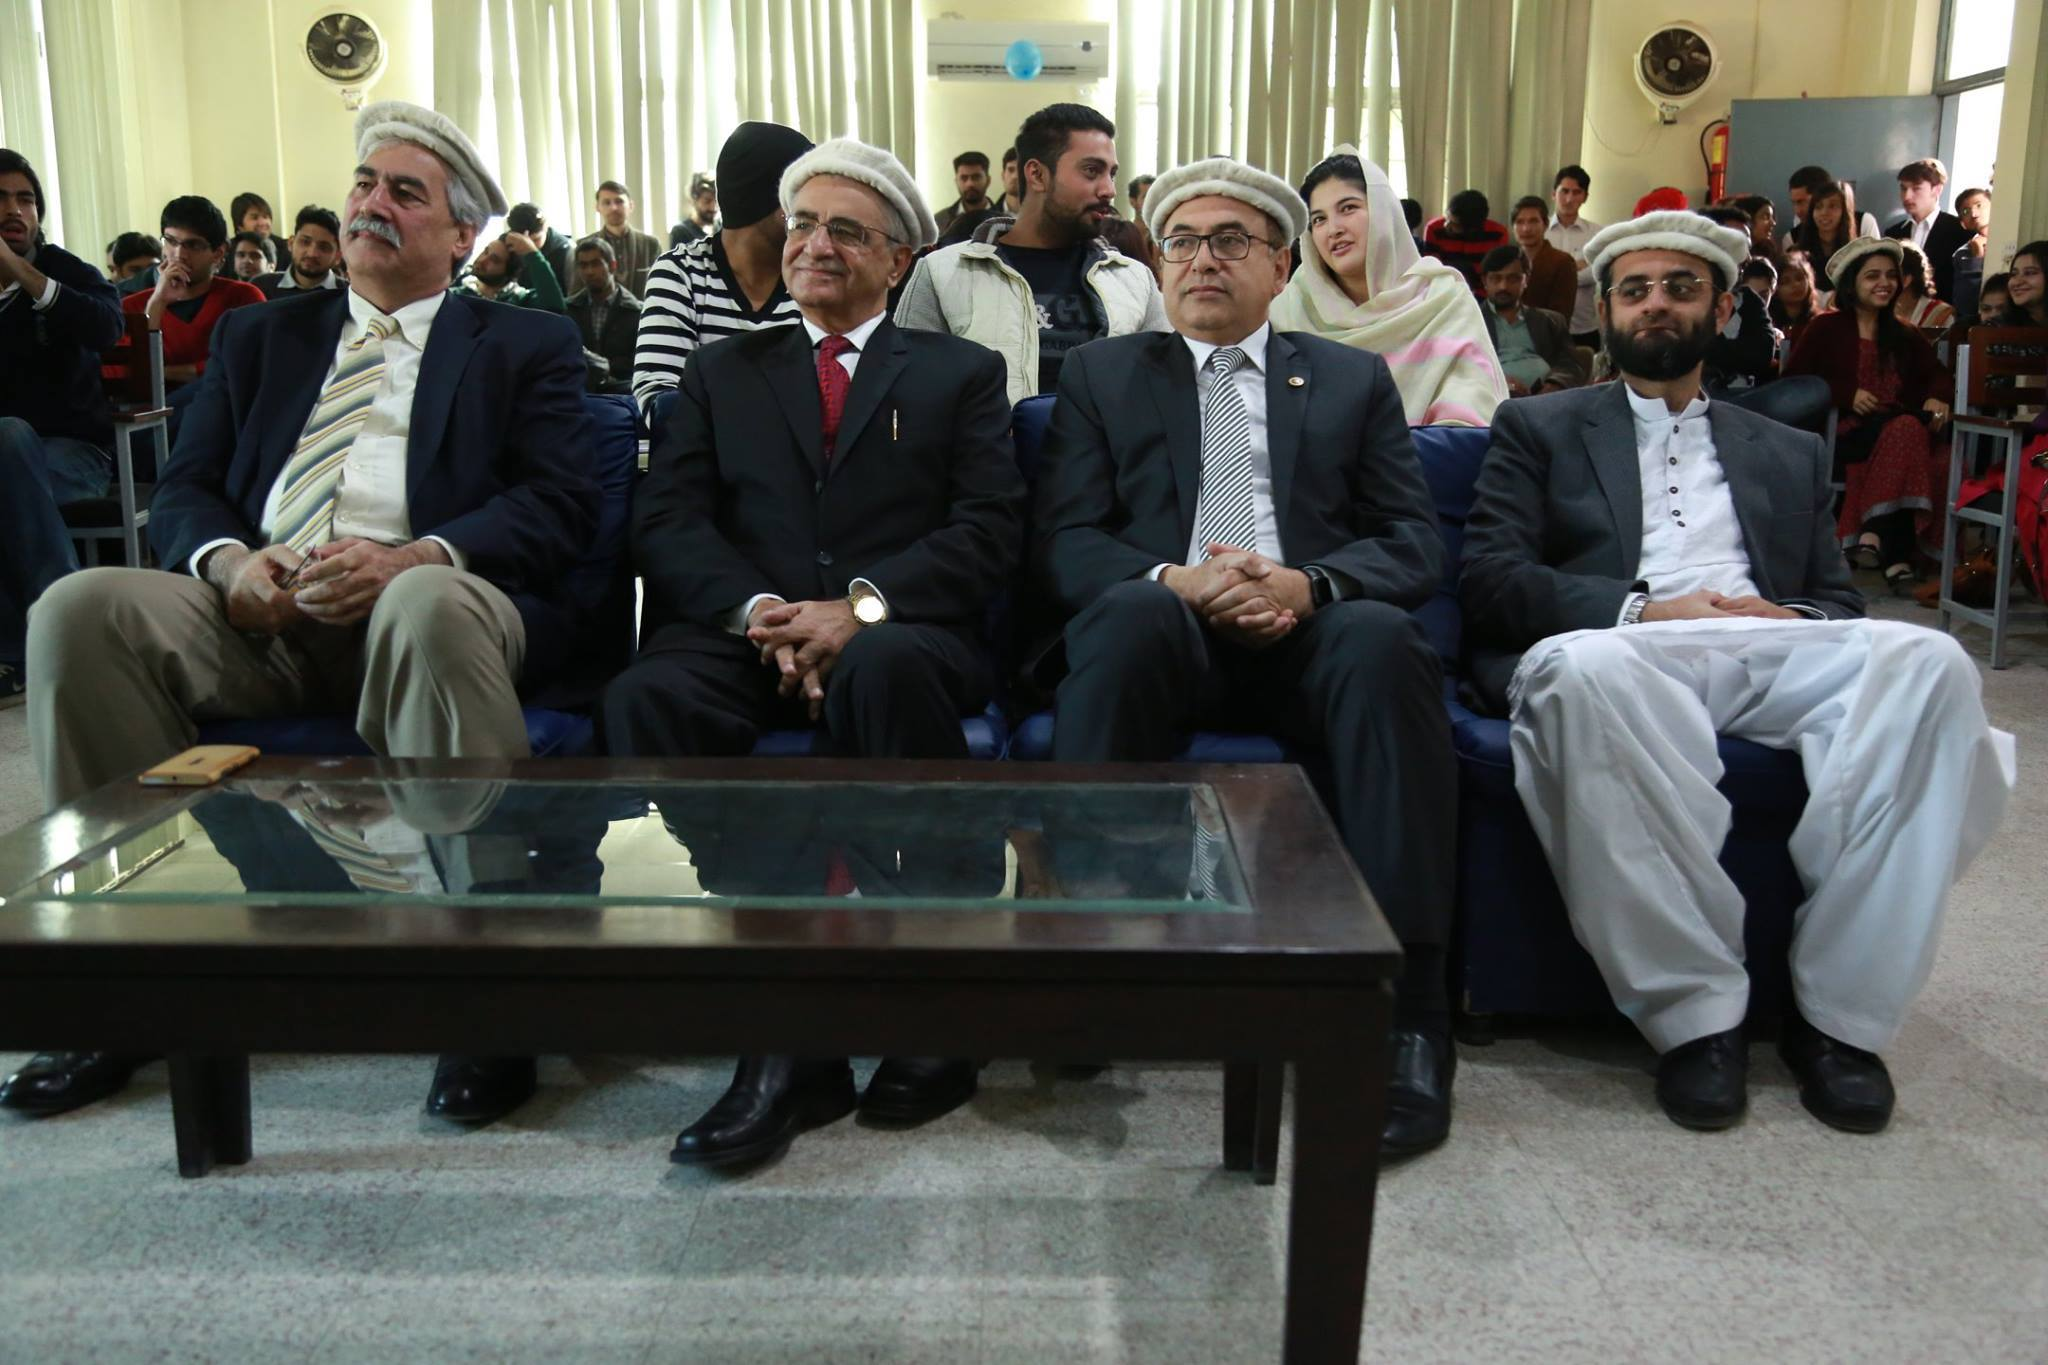 Guests and faculty members during the event